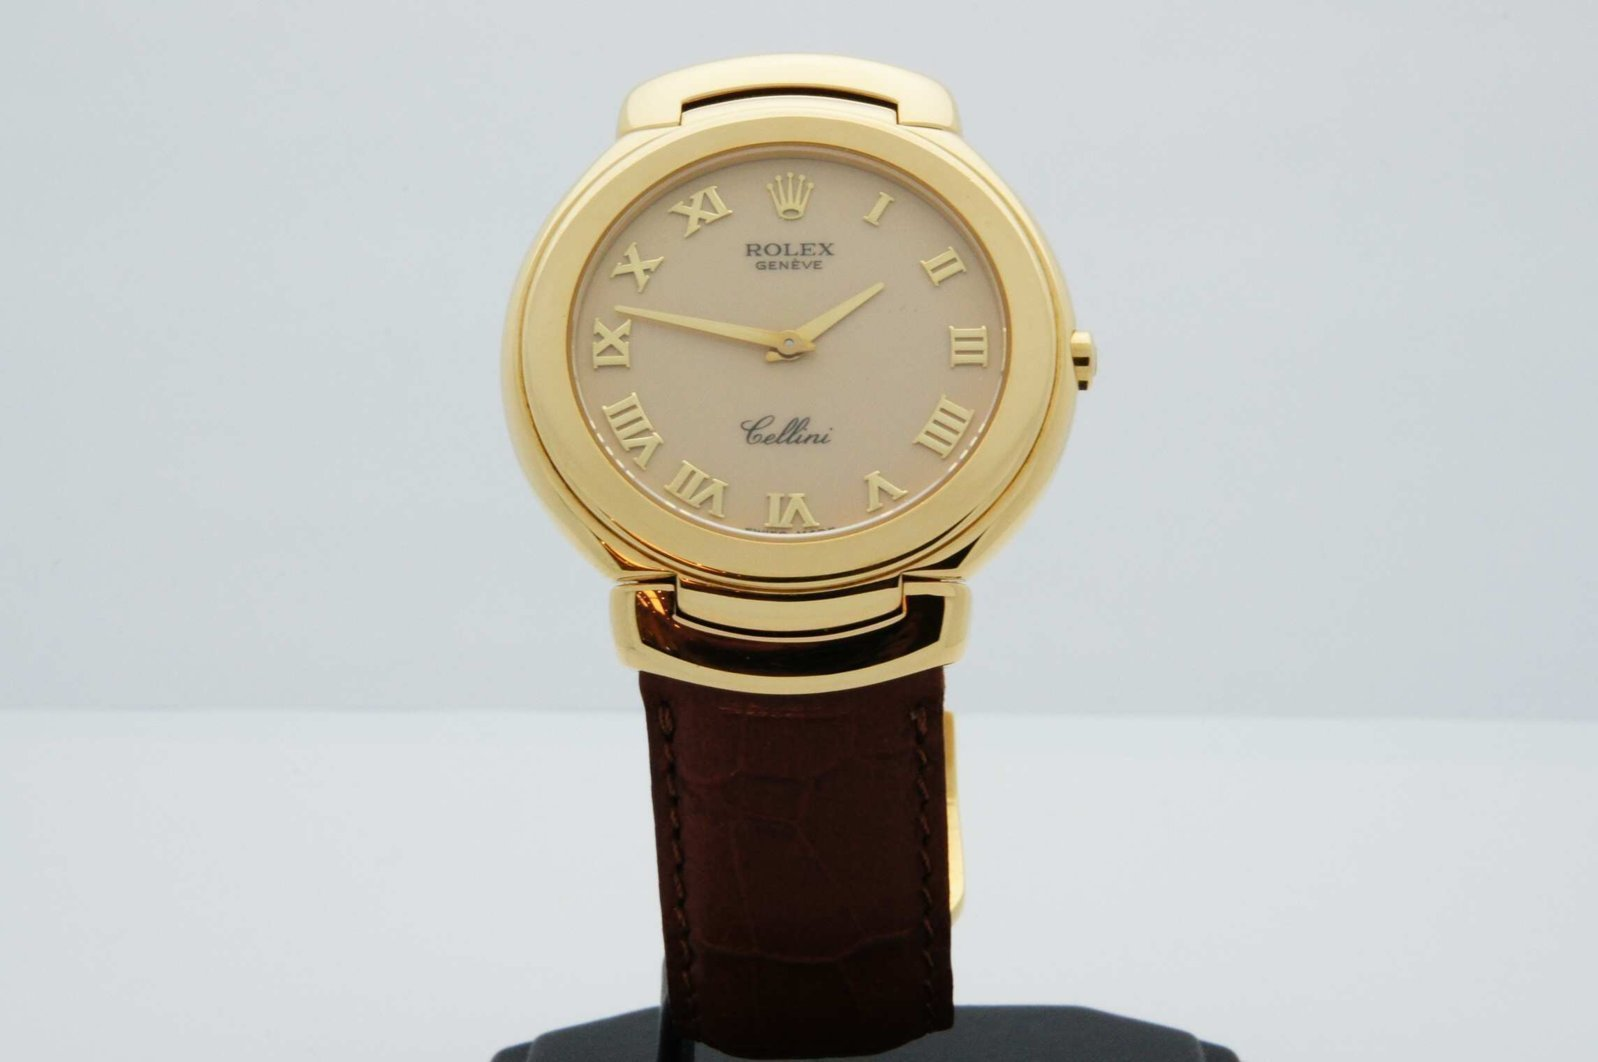 Rolex-Cellini-Geneve-Quartz-18kt-Yellow-Gold-1.jpg